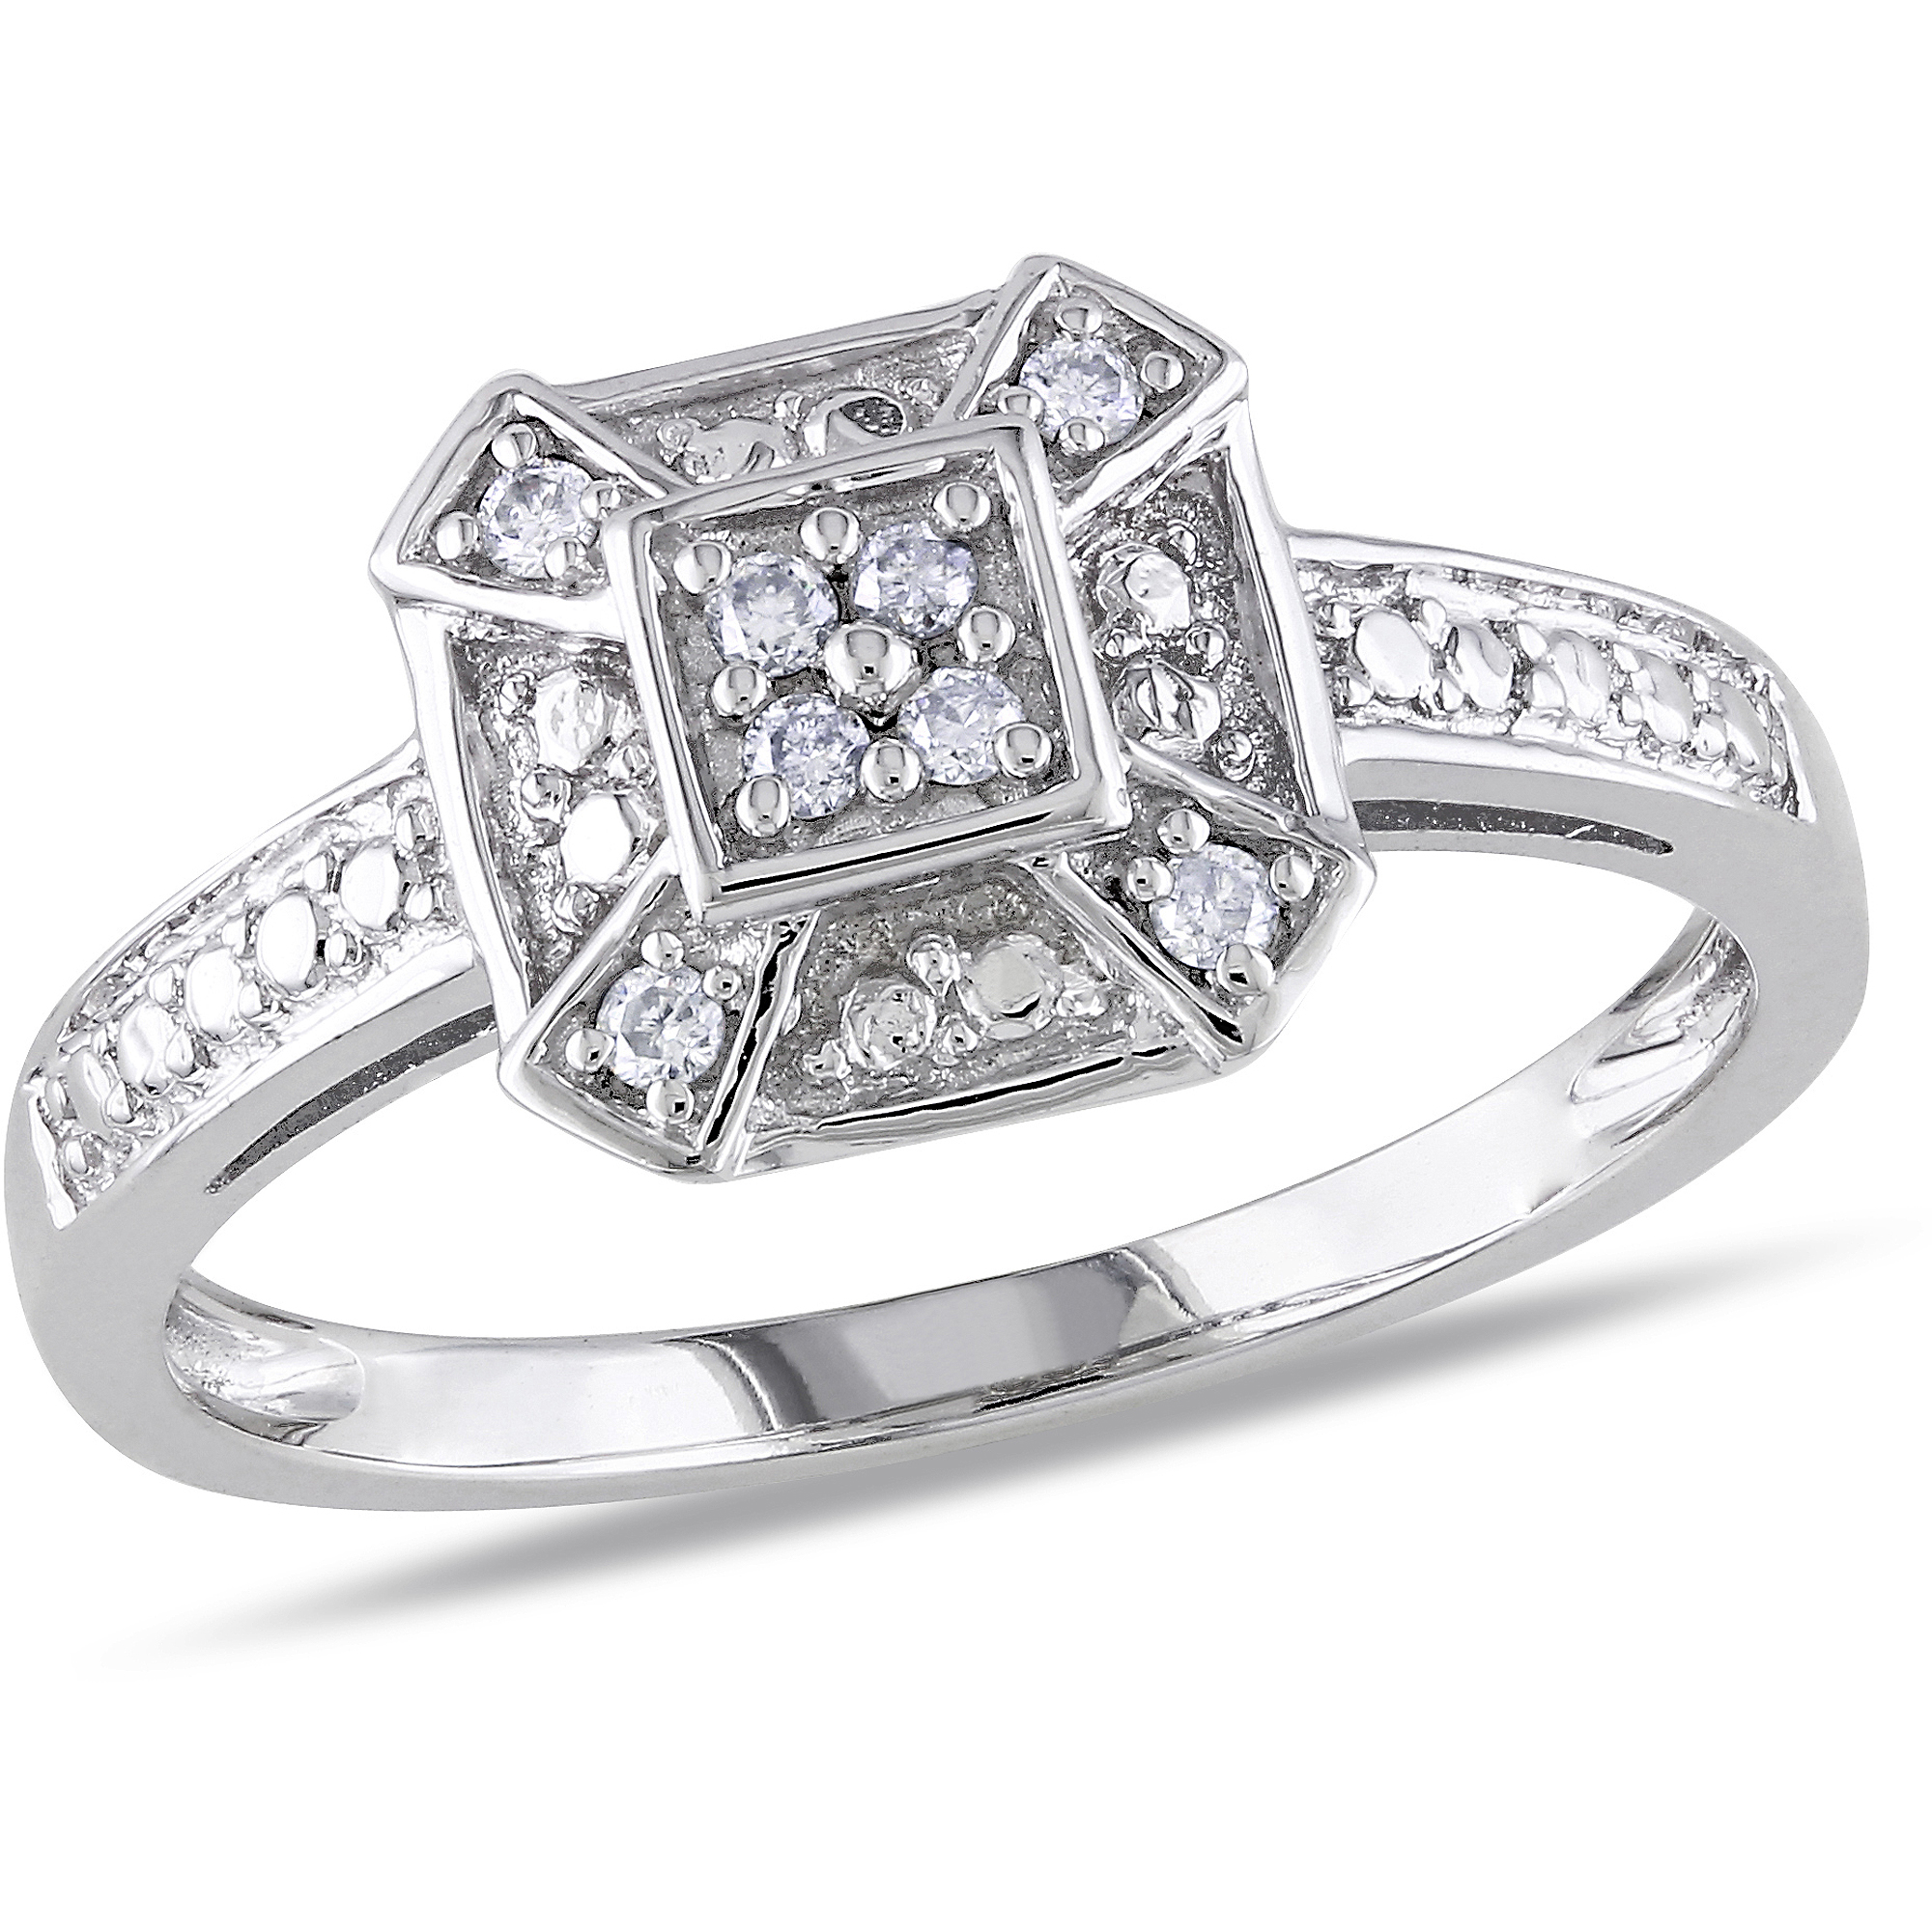 Miabella 1/10 Carat T.W. Diamond Fashion Ring in Sterling Silver